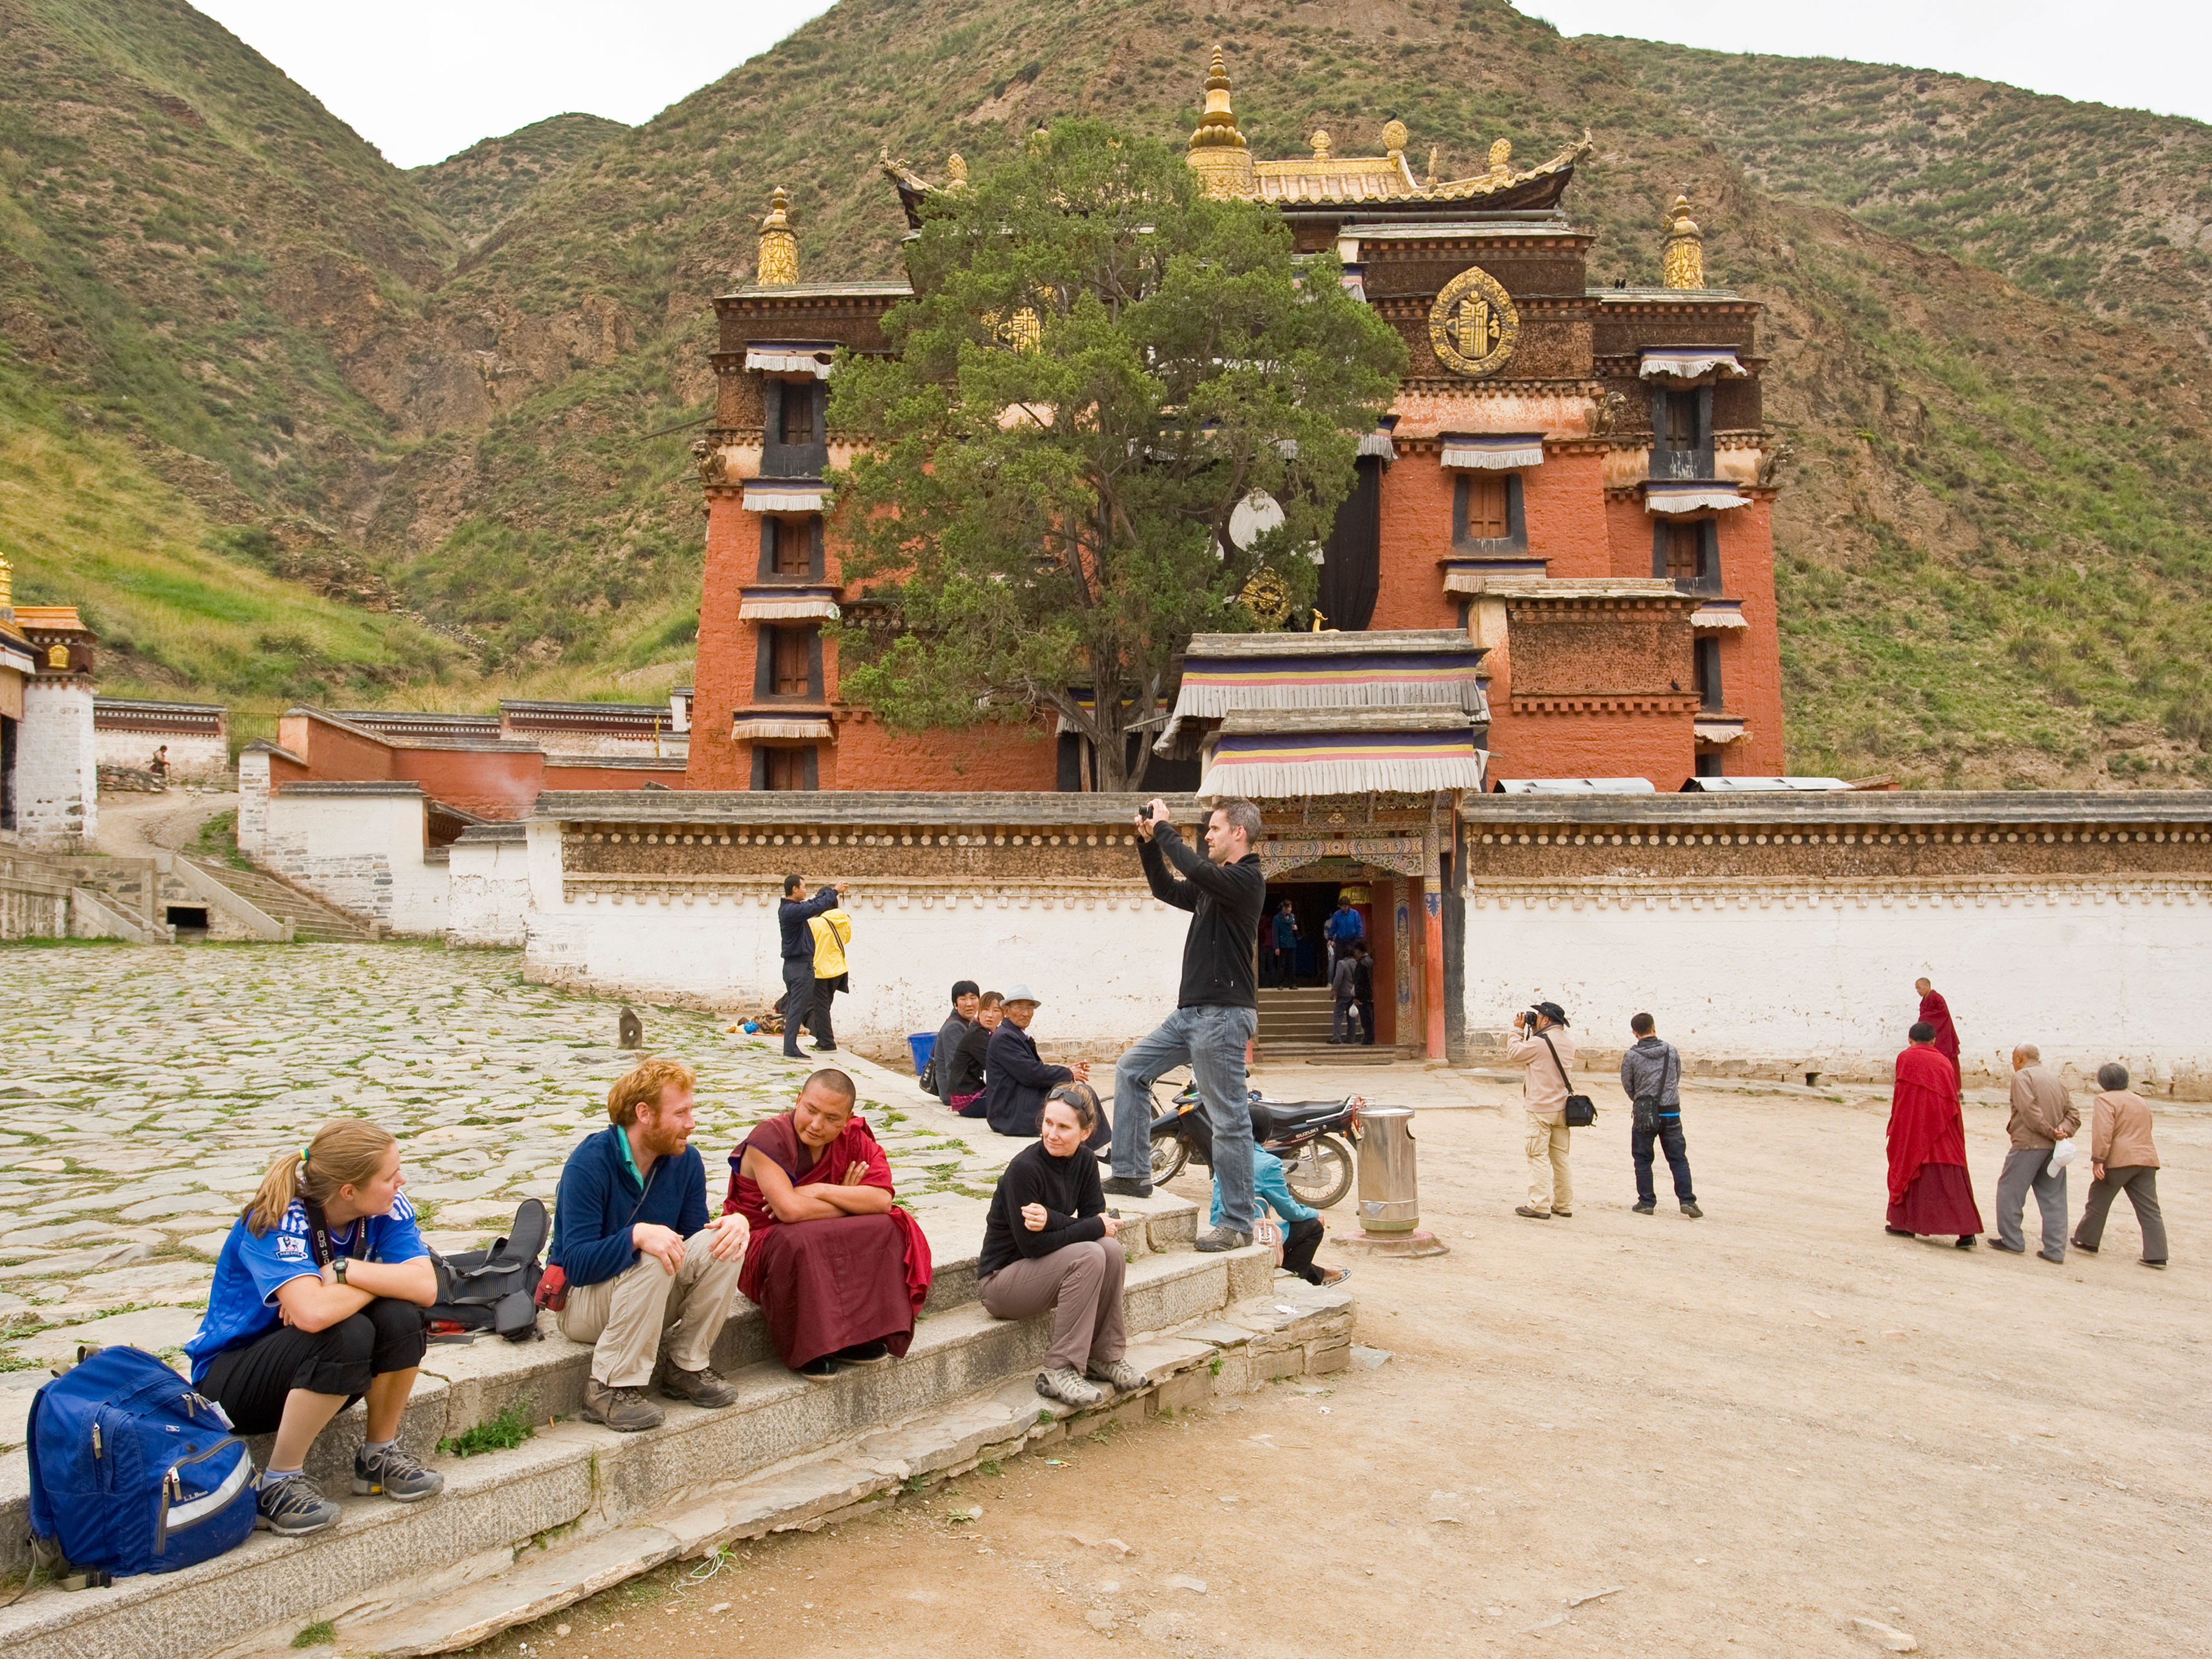 China says Tibet access is restricted because some foreigners get altitude sickness